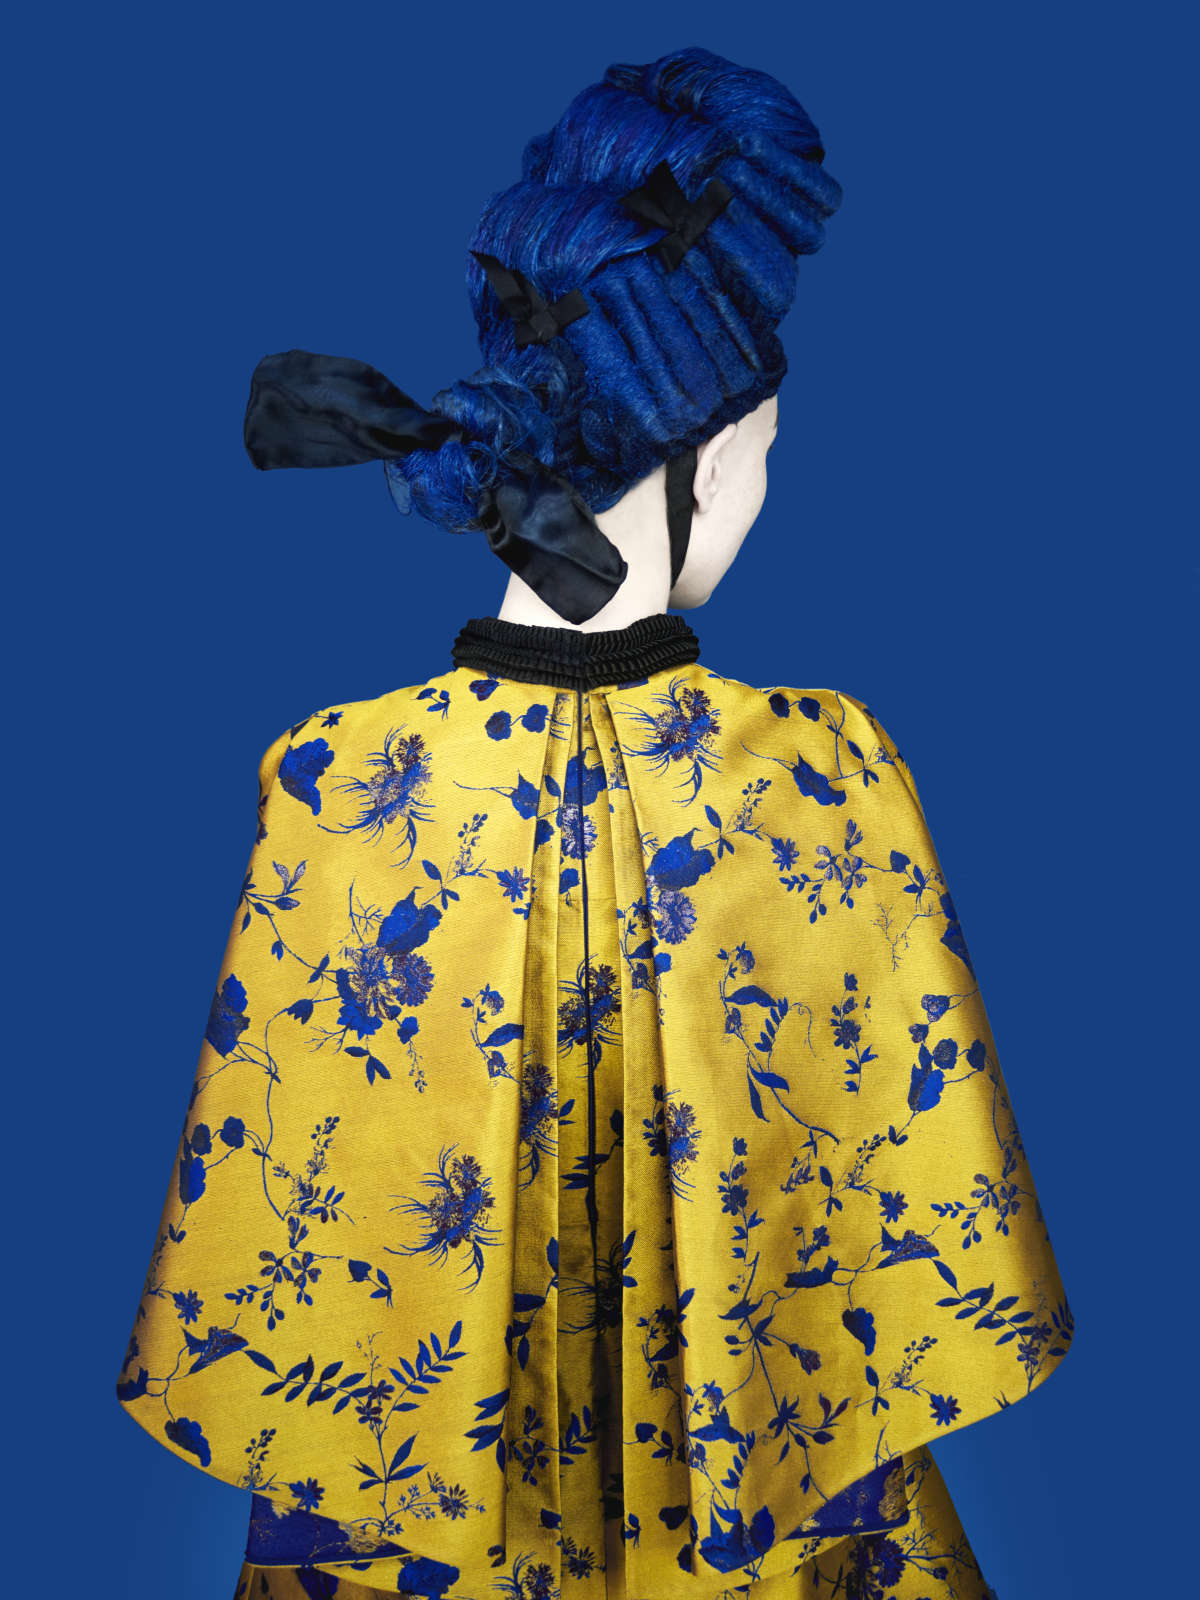 Erik Madigan Heck, Erdem, Old Future, 2014